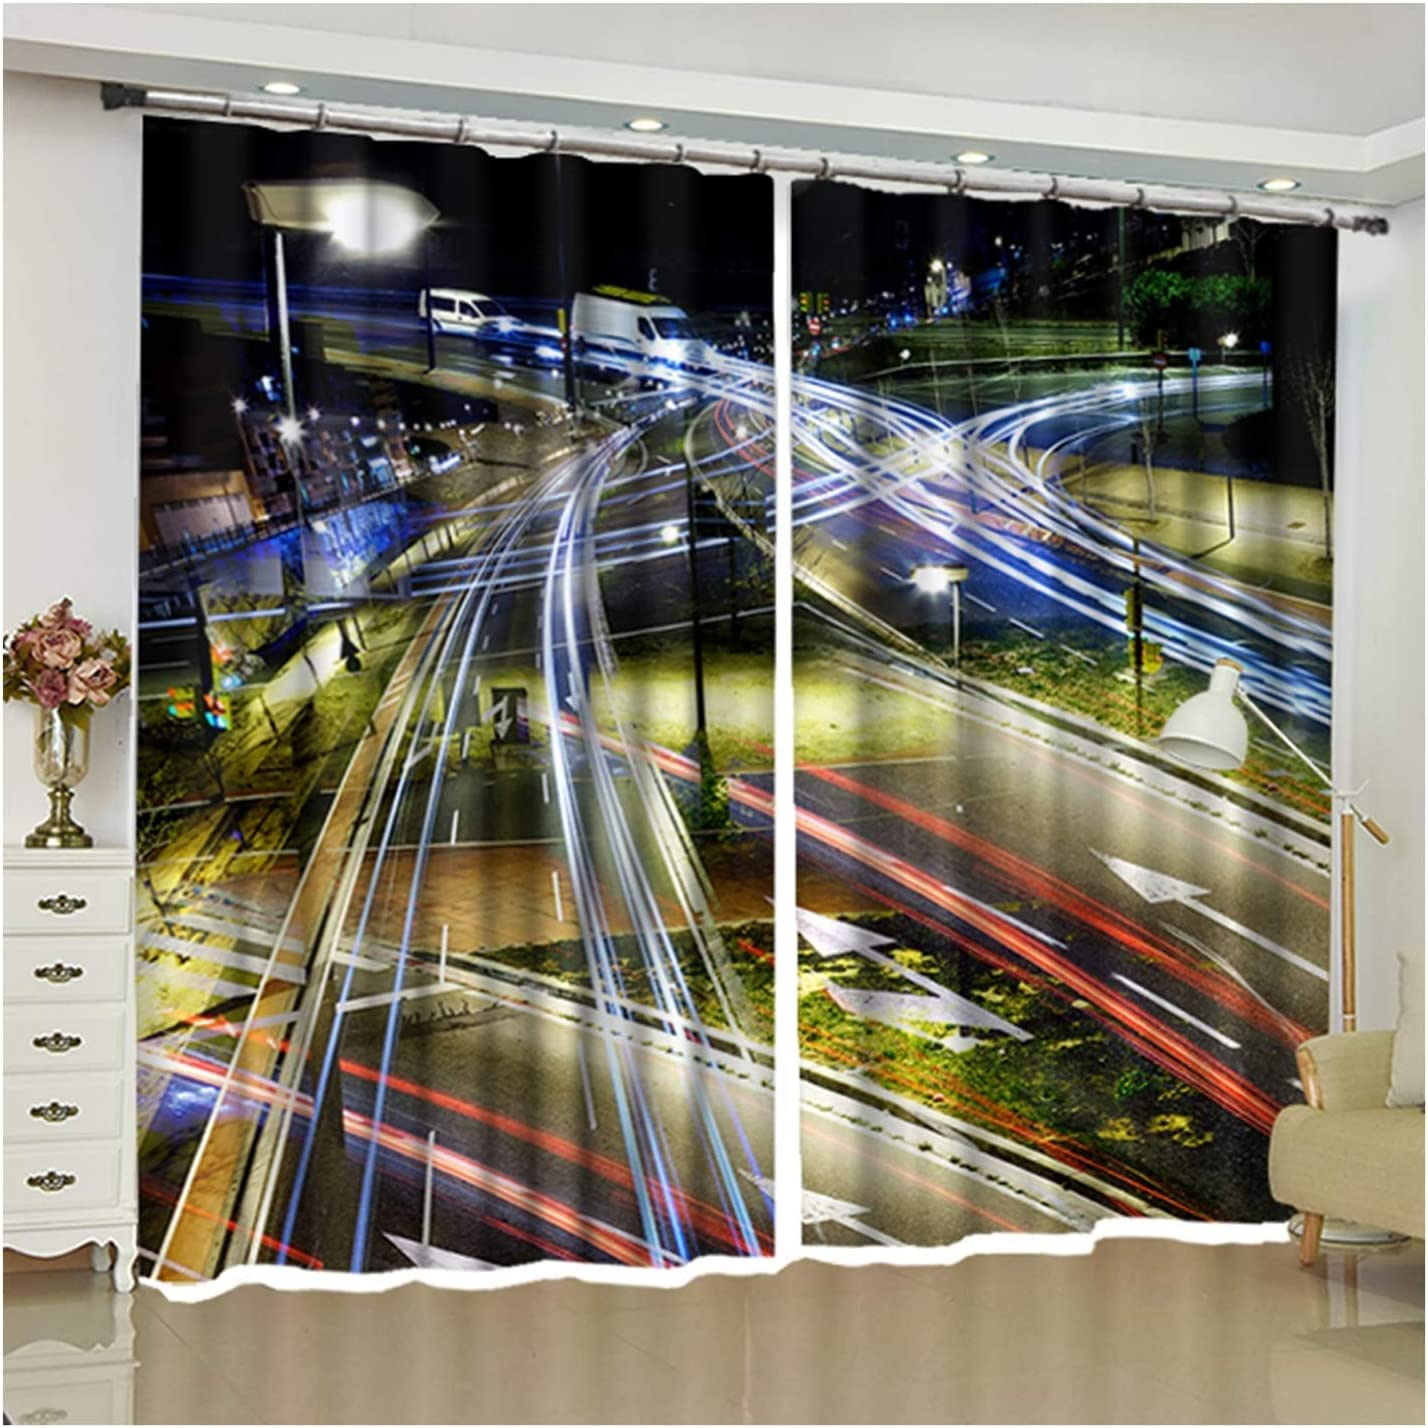 Daesar Curtain Modern Living All Rapid rise stores are sold Room 2 Panels Set Black of